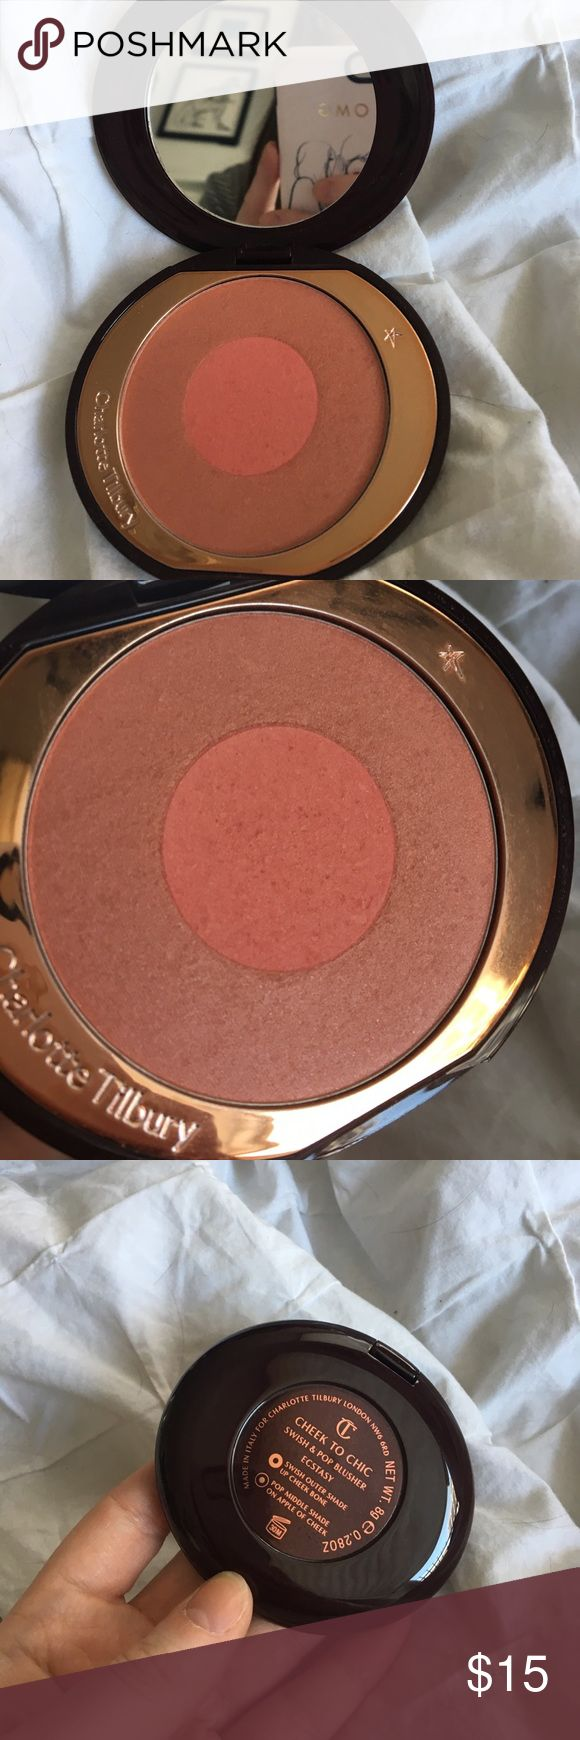 Charlotte Tillbury Blush Charlotte Tillbury swish and pop blusher in Ecstacy. Used. The packaging is in great condition. Charlotte Tillbury  Makeup Blush